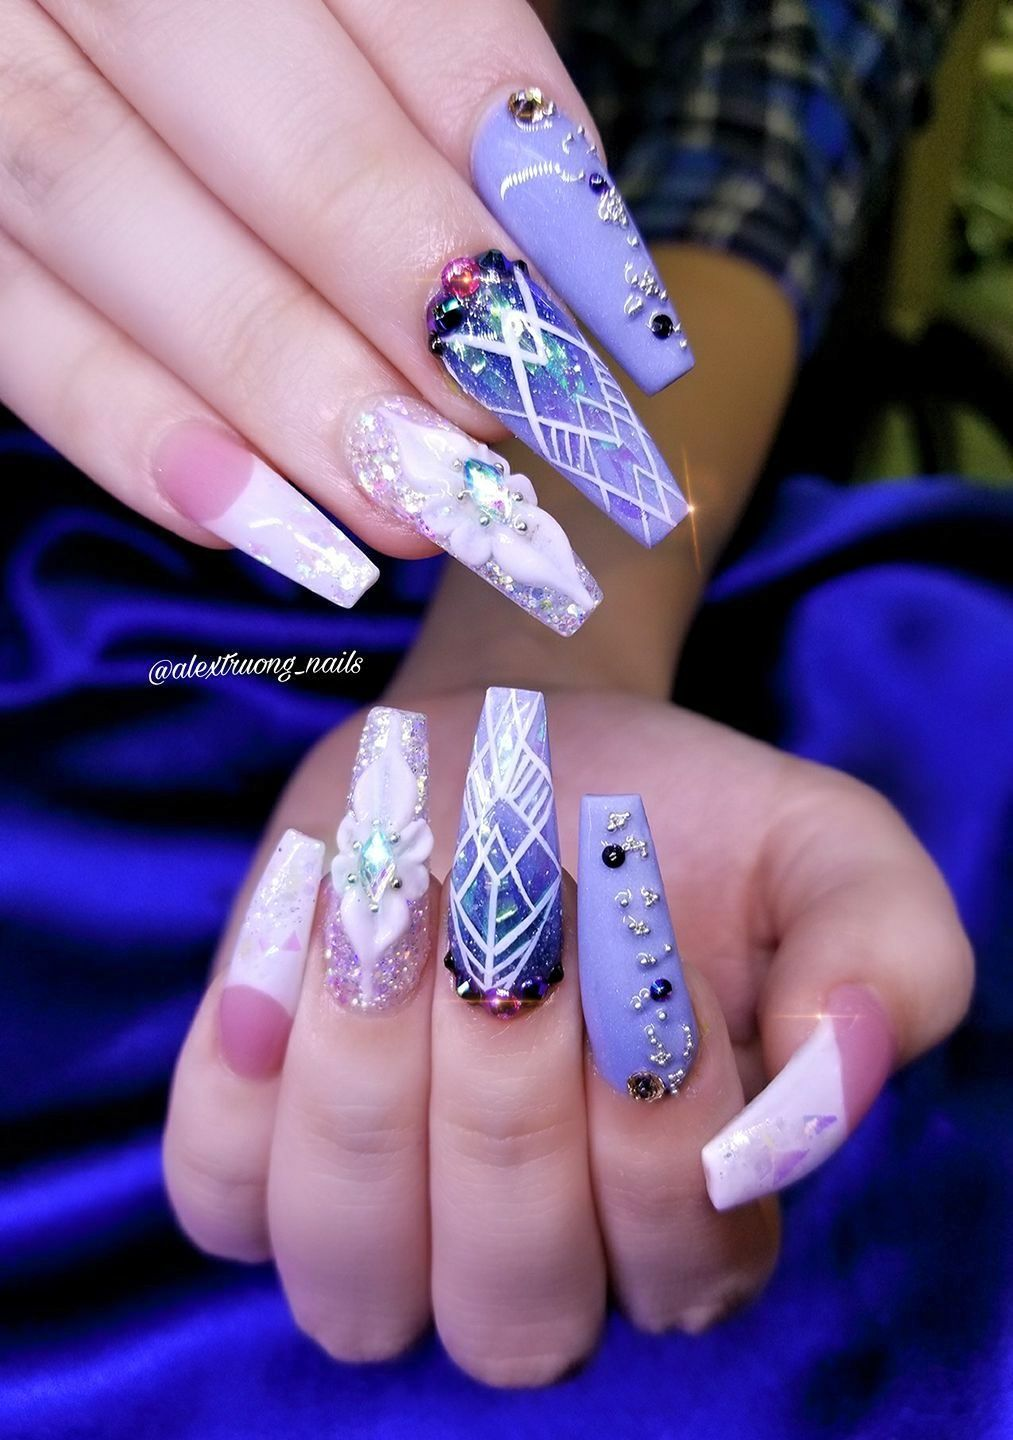 Pin by 💎KIANIA💎 on CLAW COUTURE | Pinterest | Nail nail, Designer ...